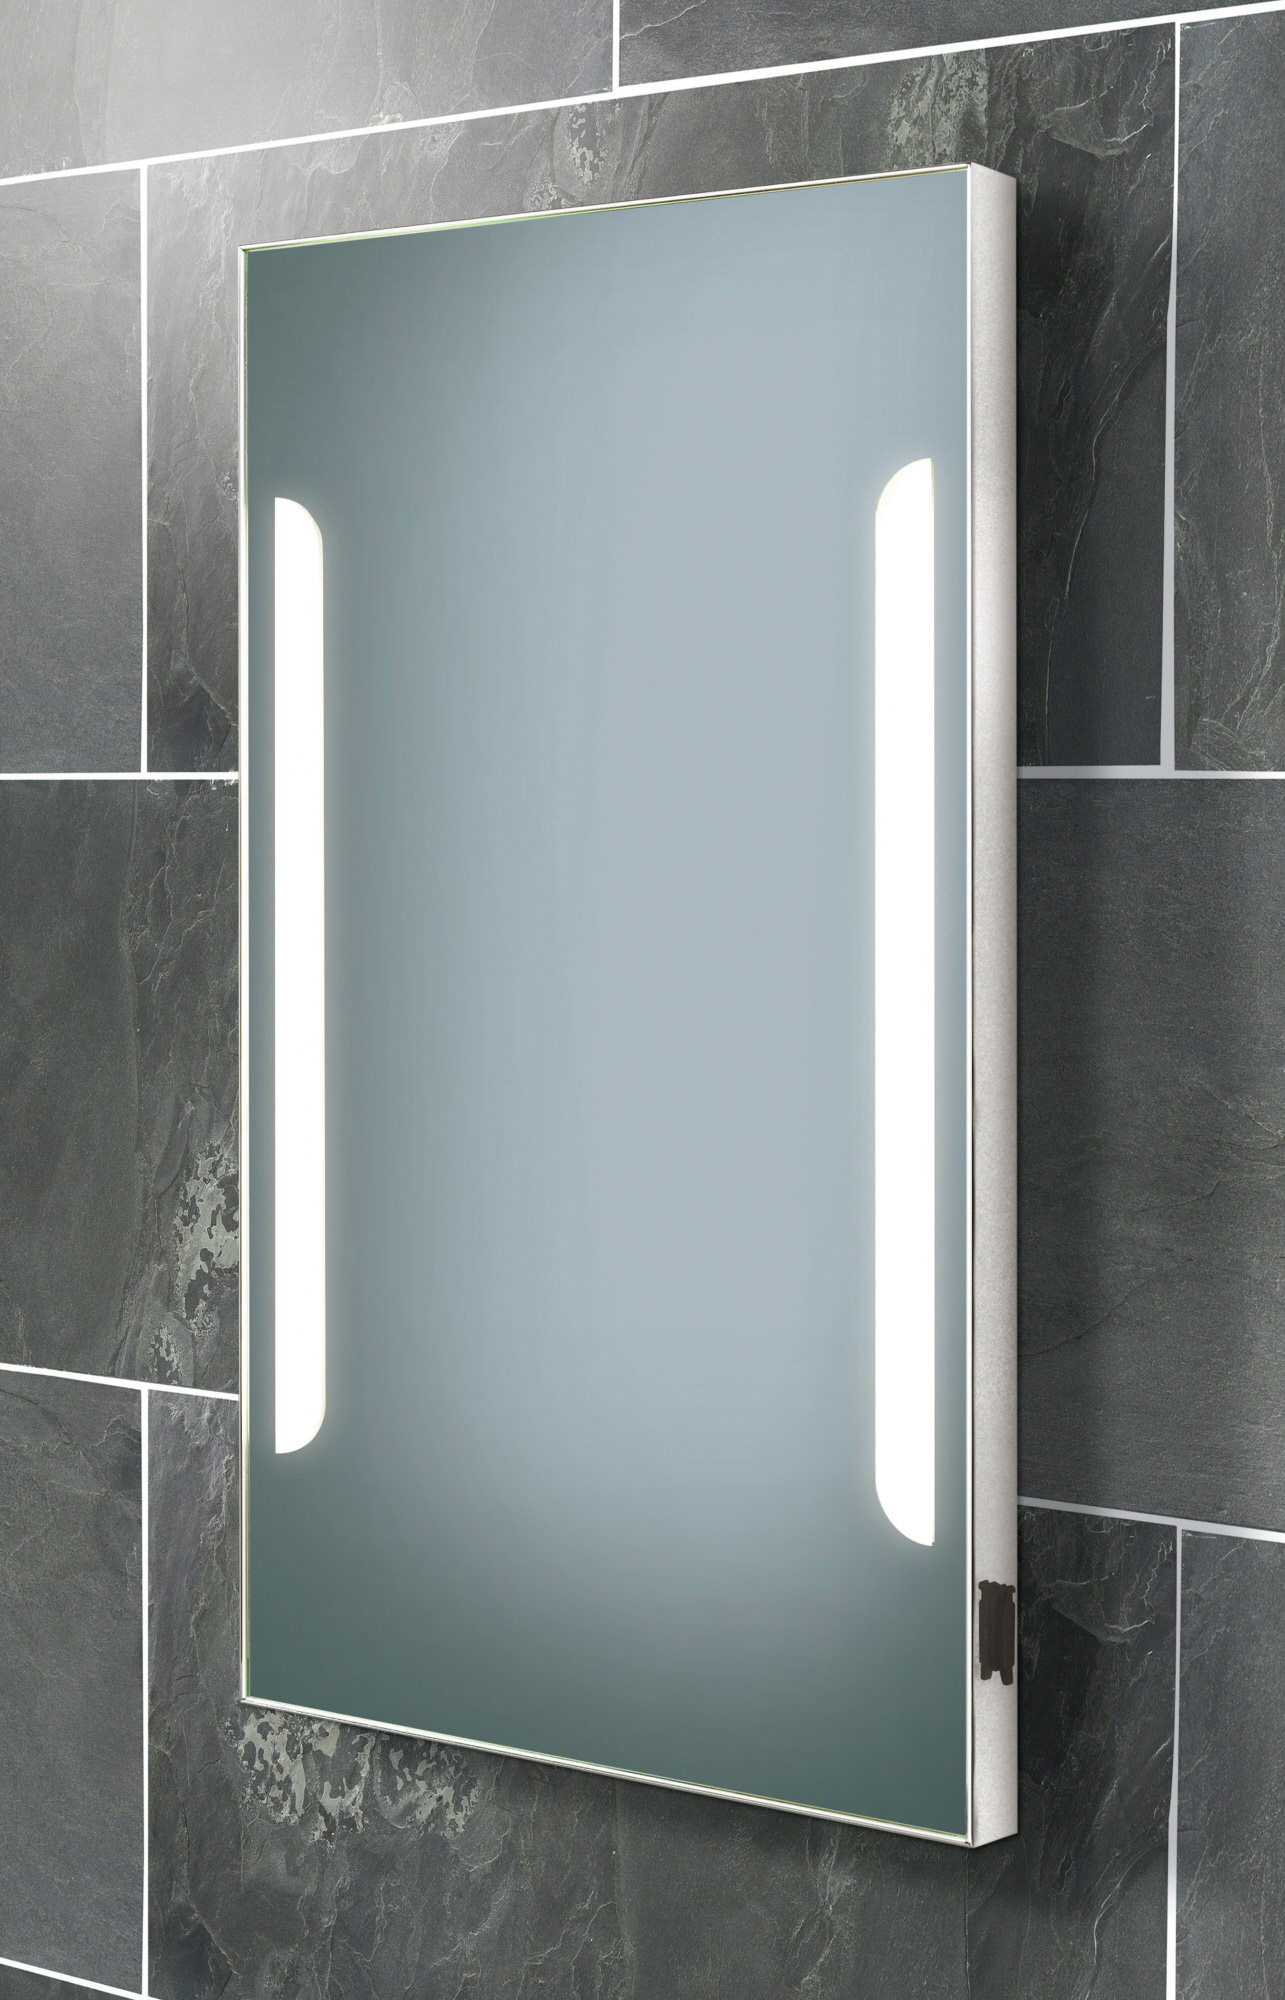 Hib zenith back lit steam free mirror with shaver socket 450x800 hib zenith back lit steam free mirror with shaver socket 450 x 800mm aloadofball Choice Image